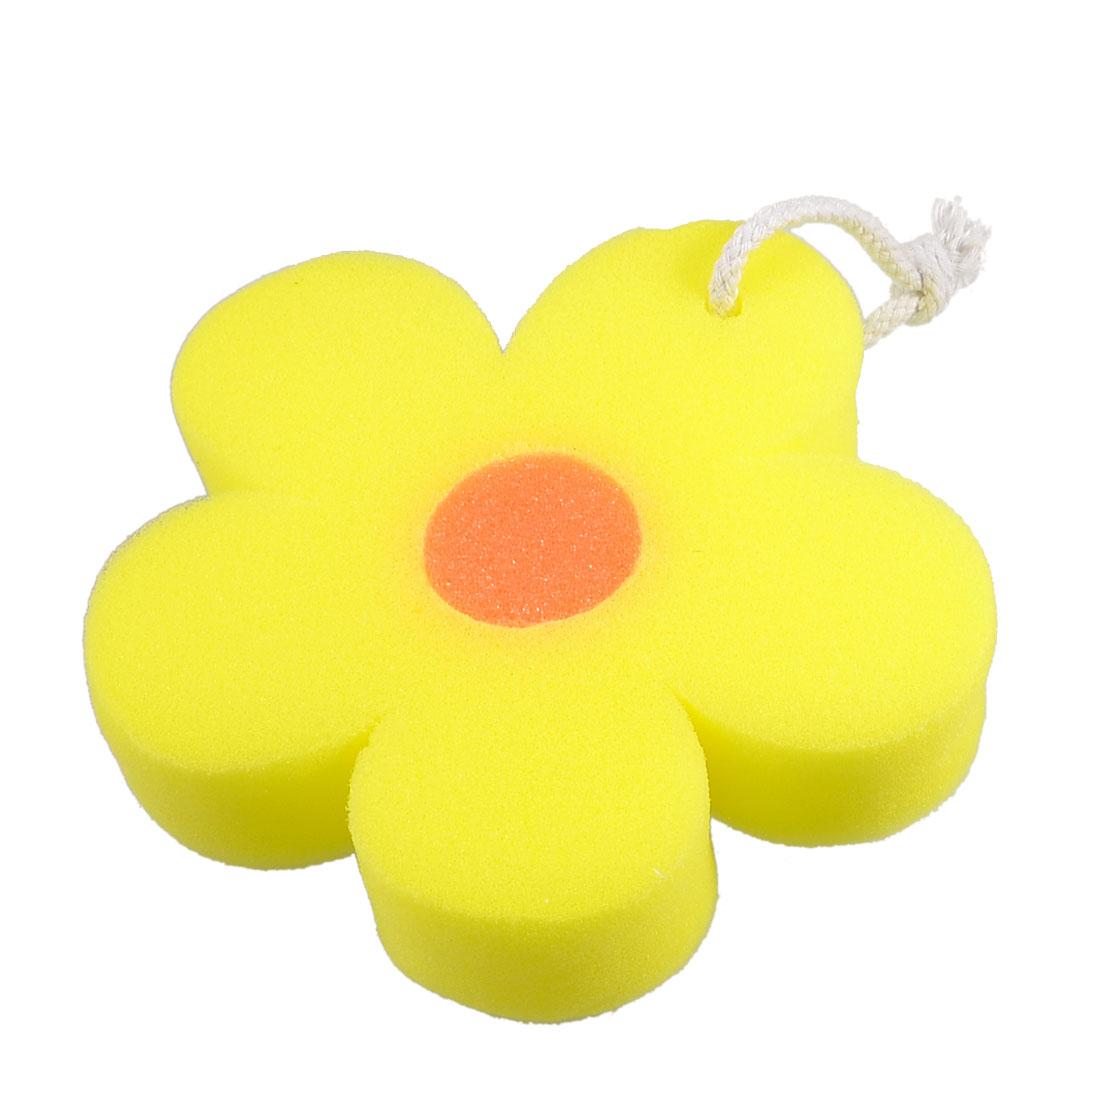 Bathroom Flower Shaped Orange Body Massage Washing Cleaner Bathing Bath Sponge